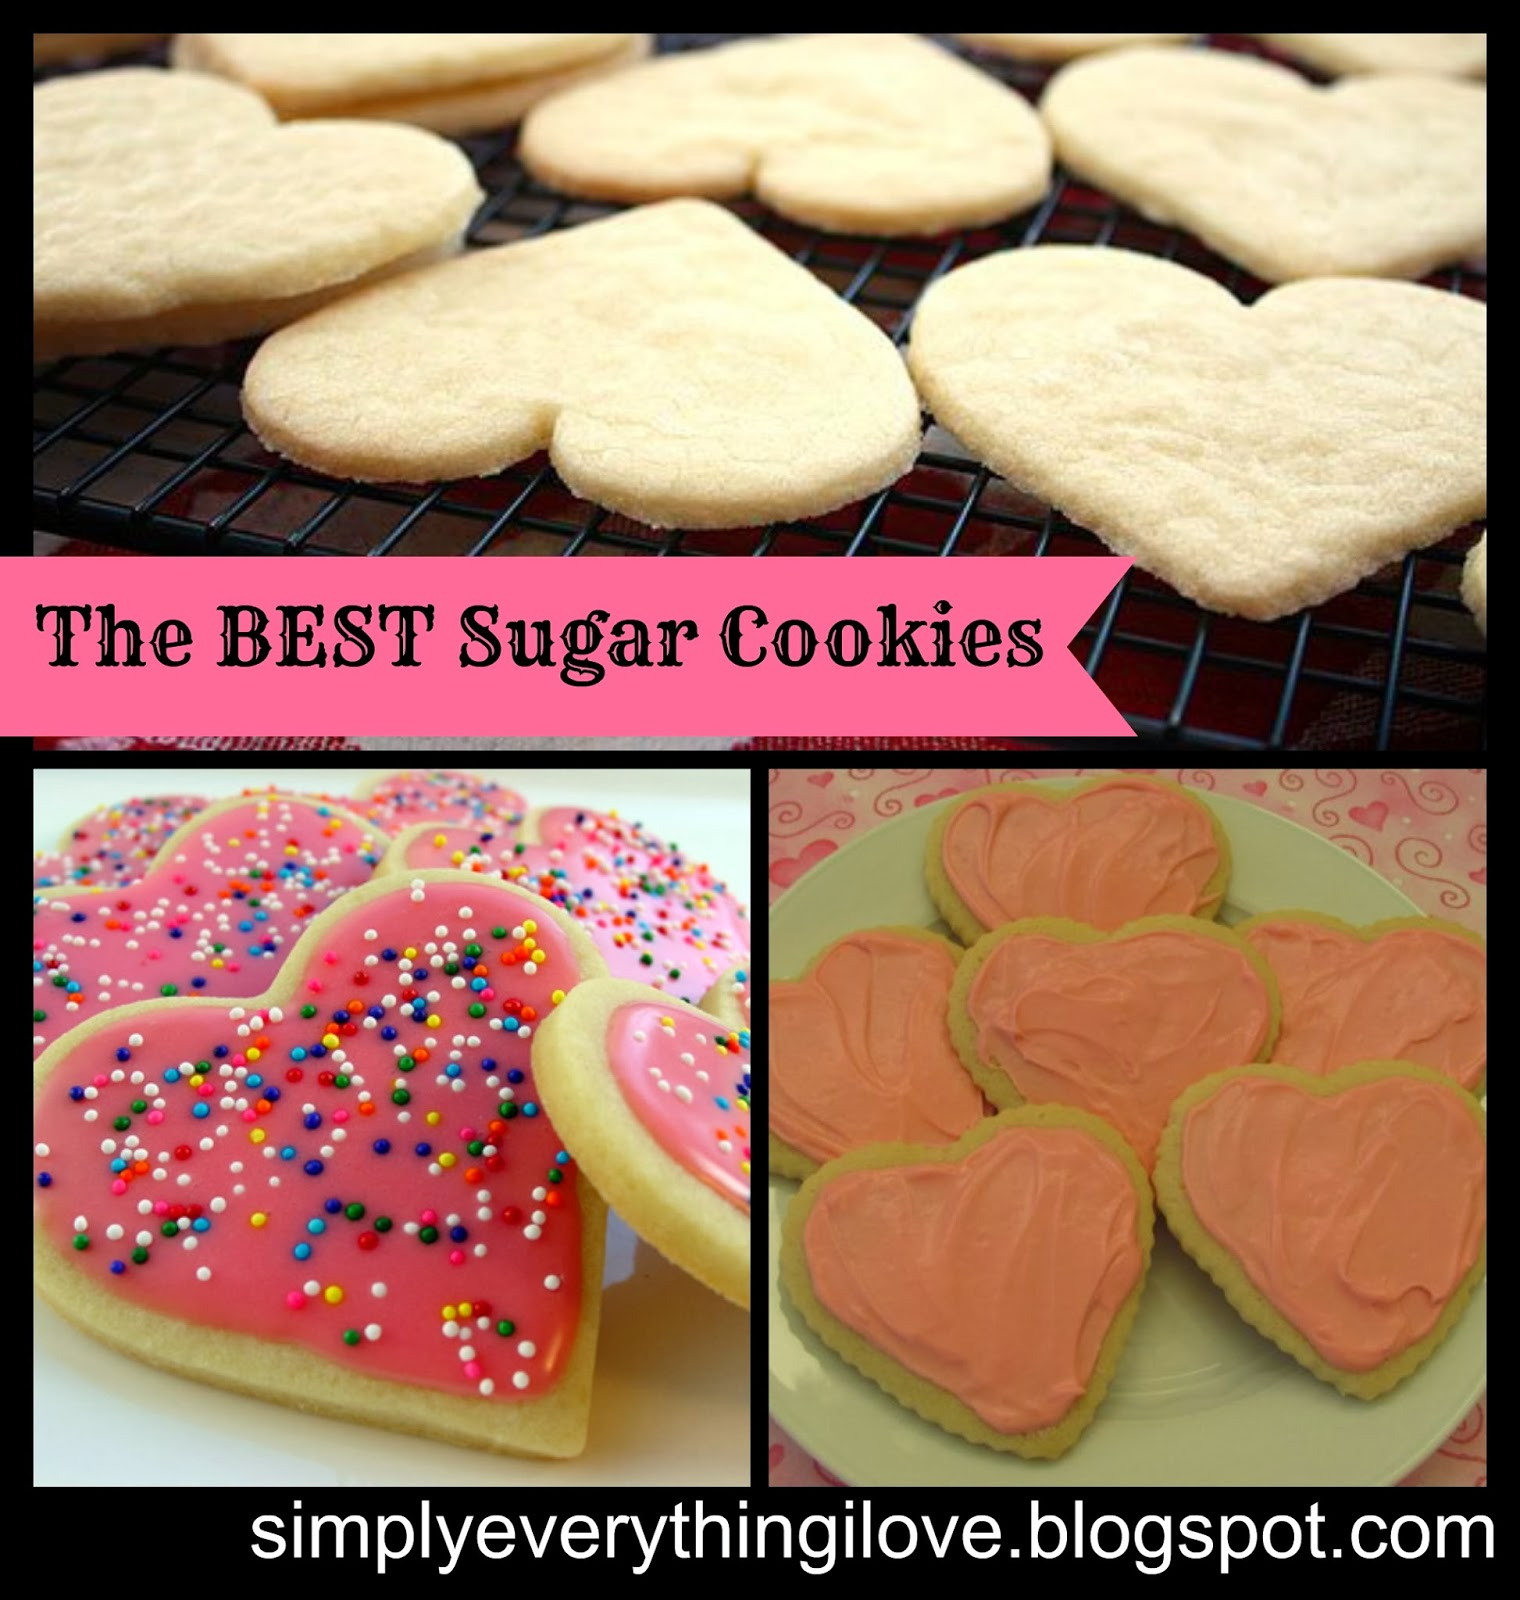 Simply Everthing I Love...: The BEST Sugar Cookies!!